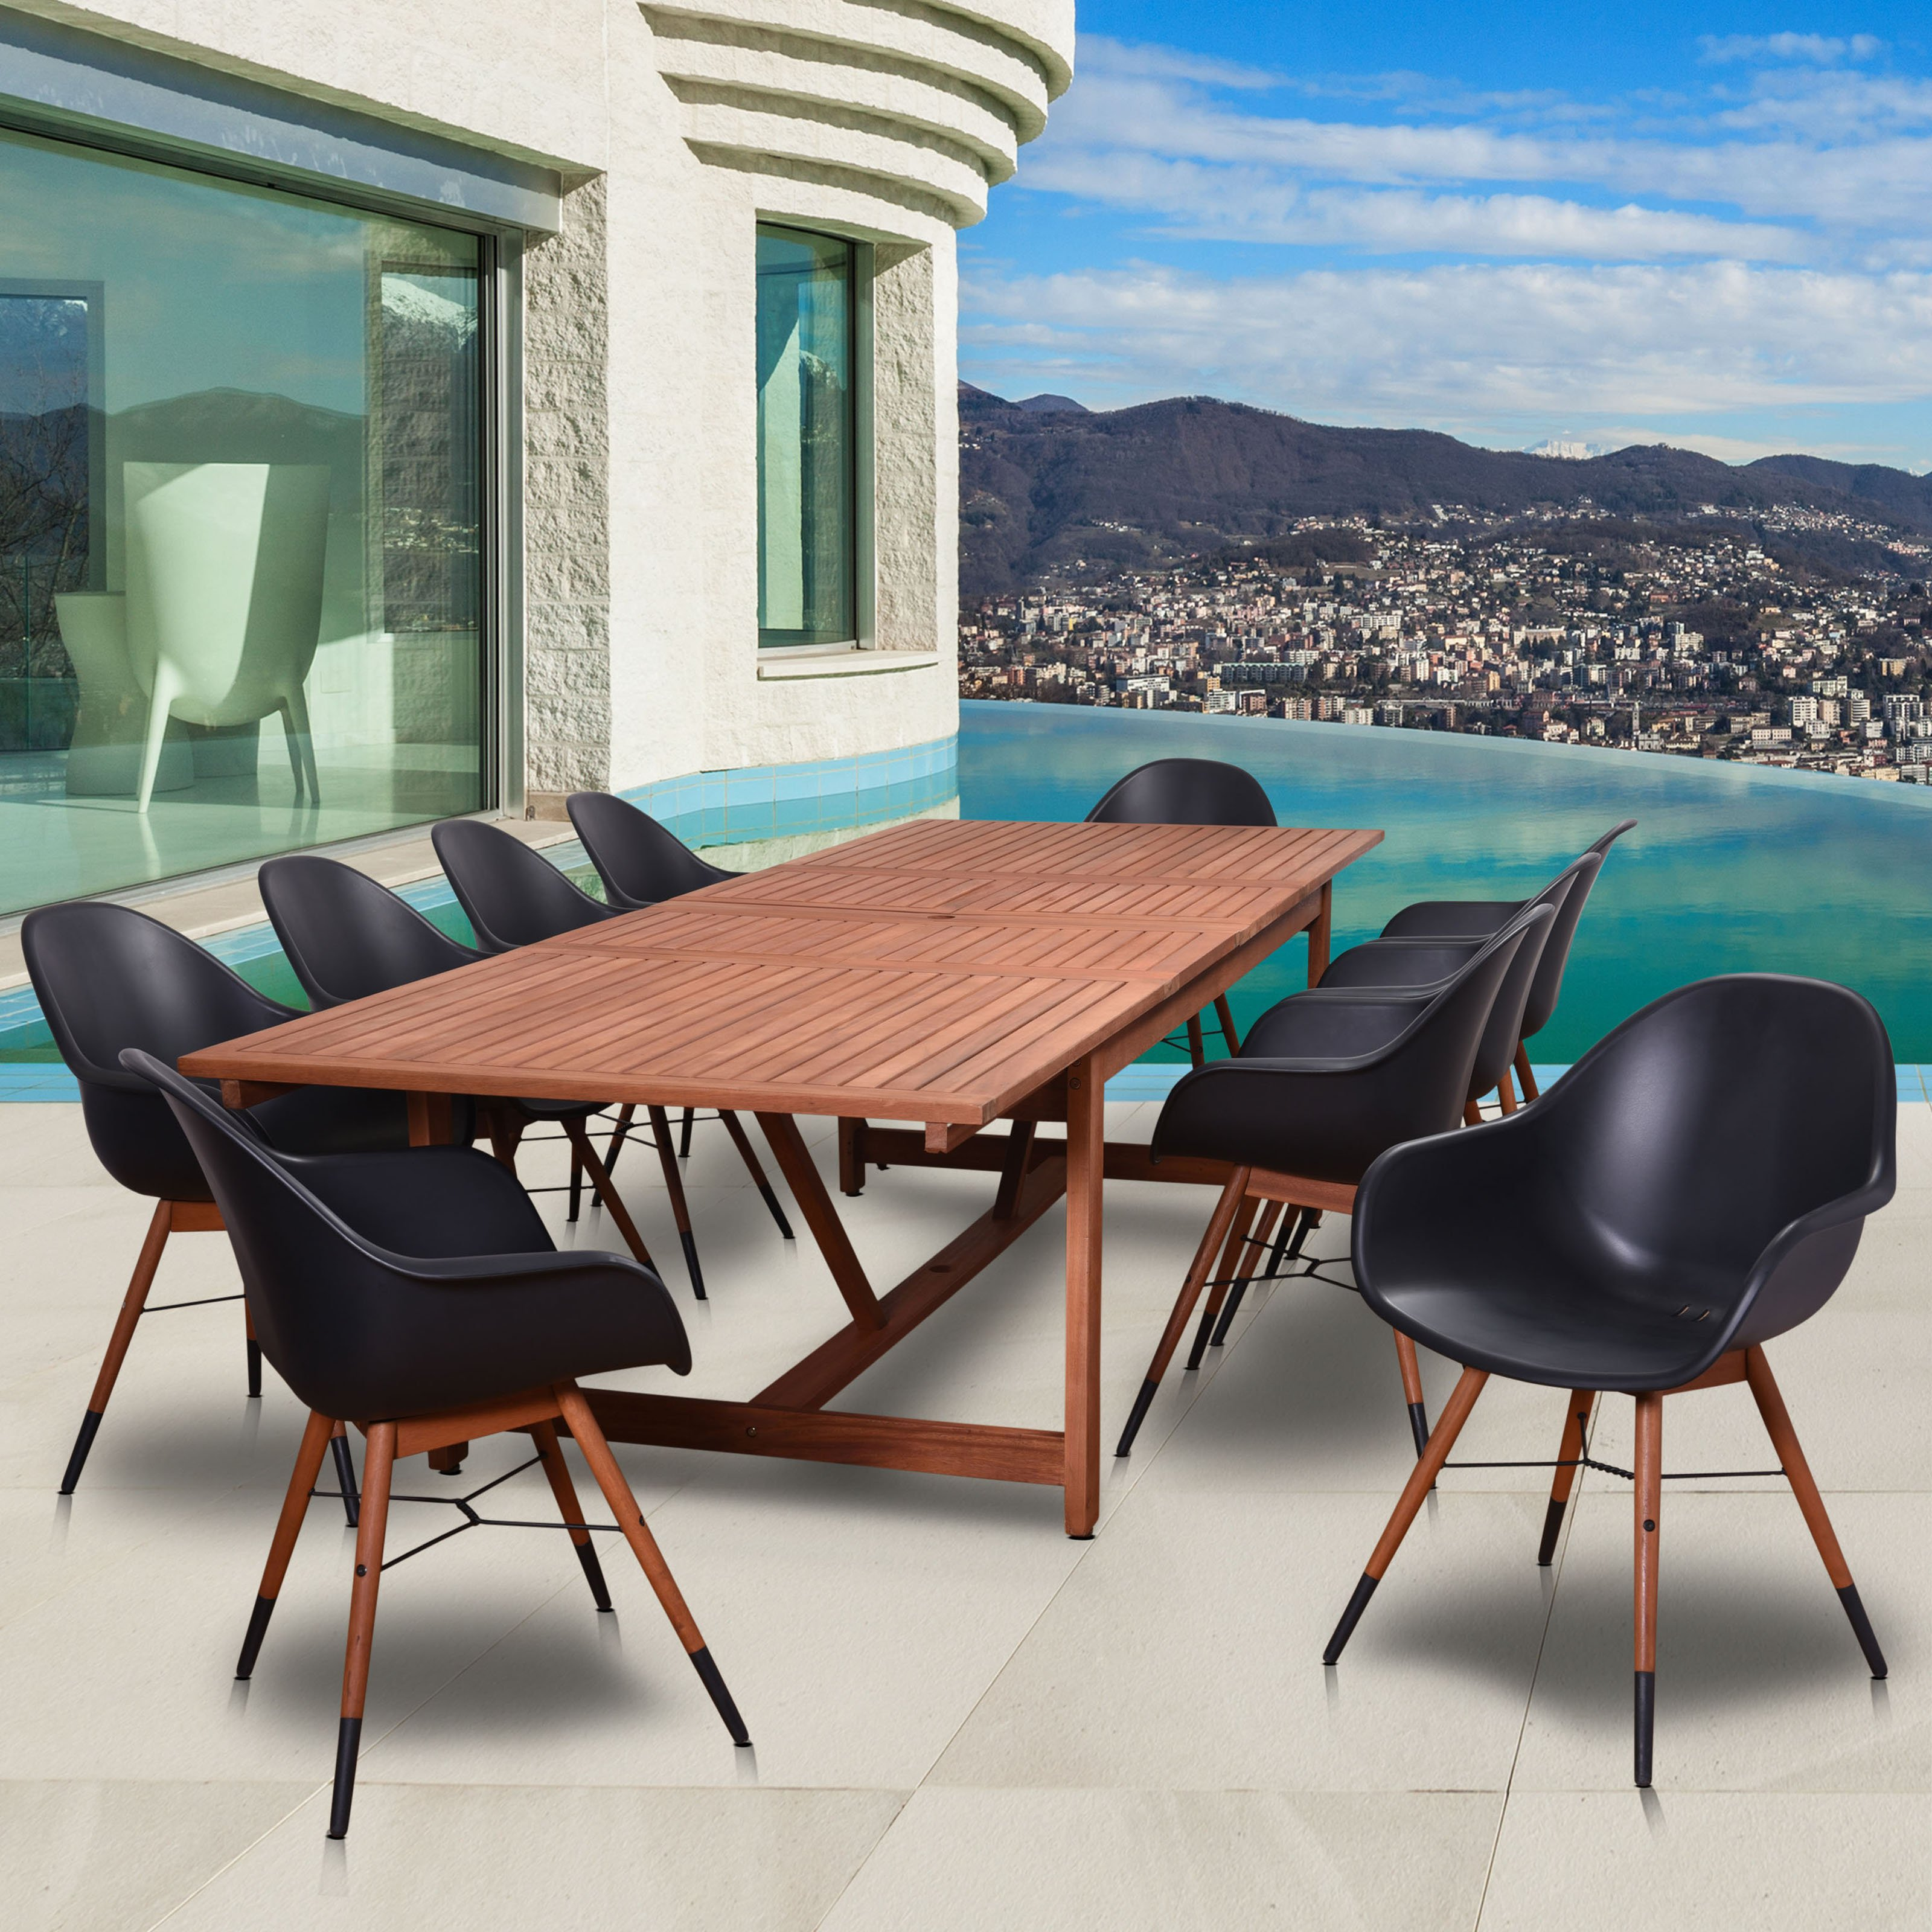 Amazonia Valli Wood 11 Piece Rectangular Patio Dining Set